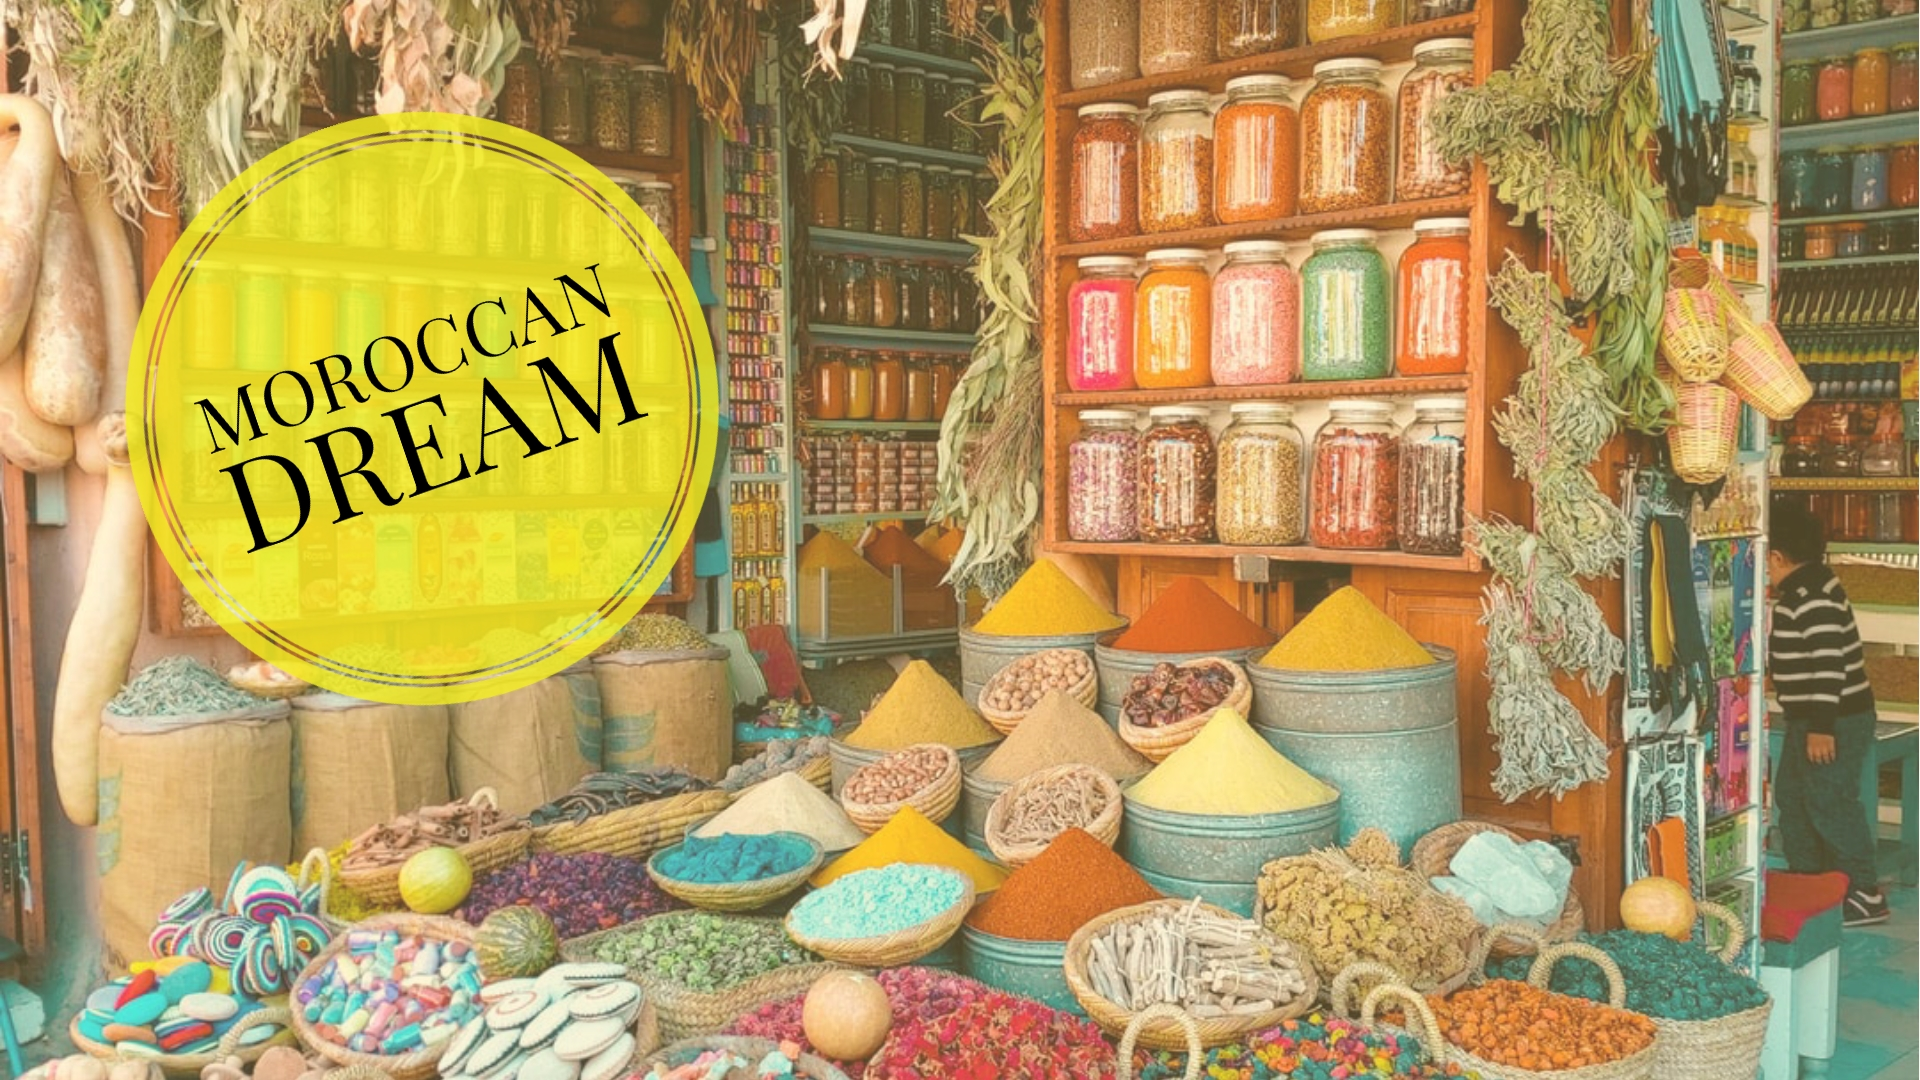 Moroccan Dream Souk Market